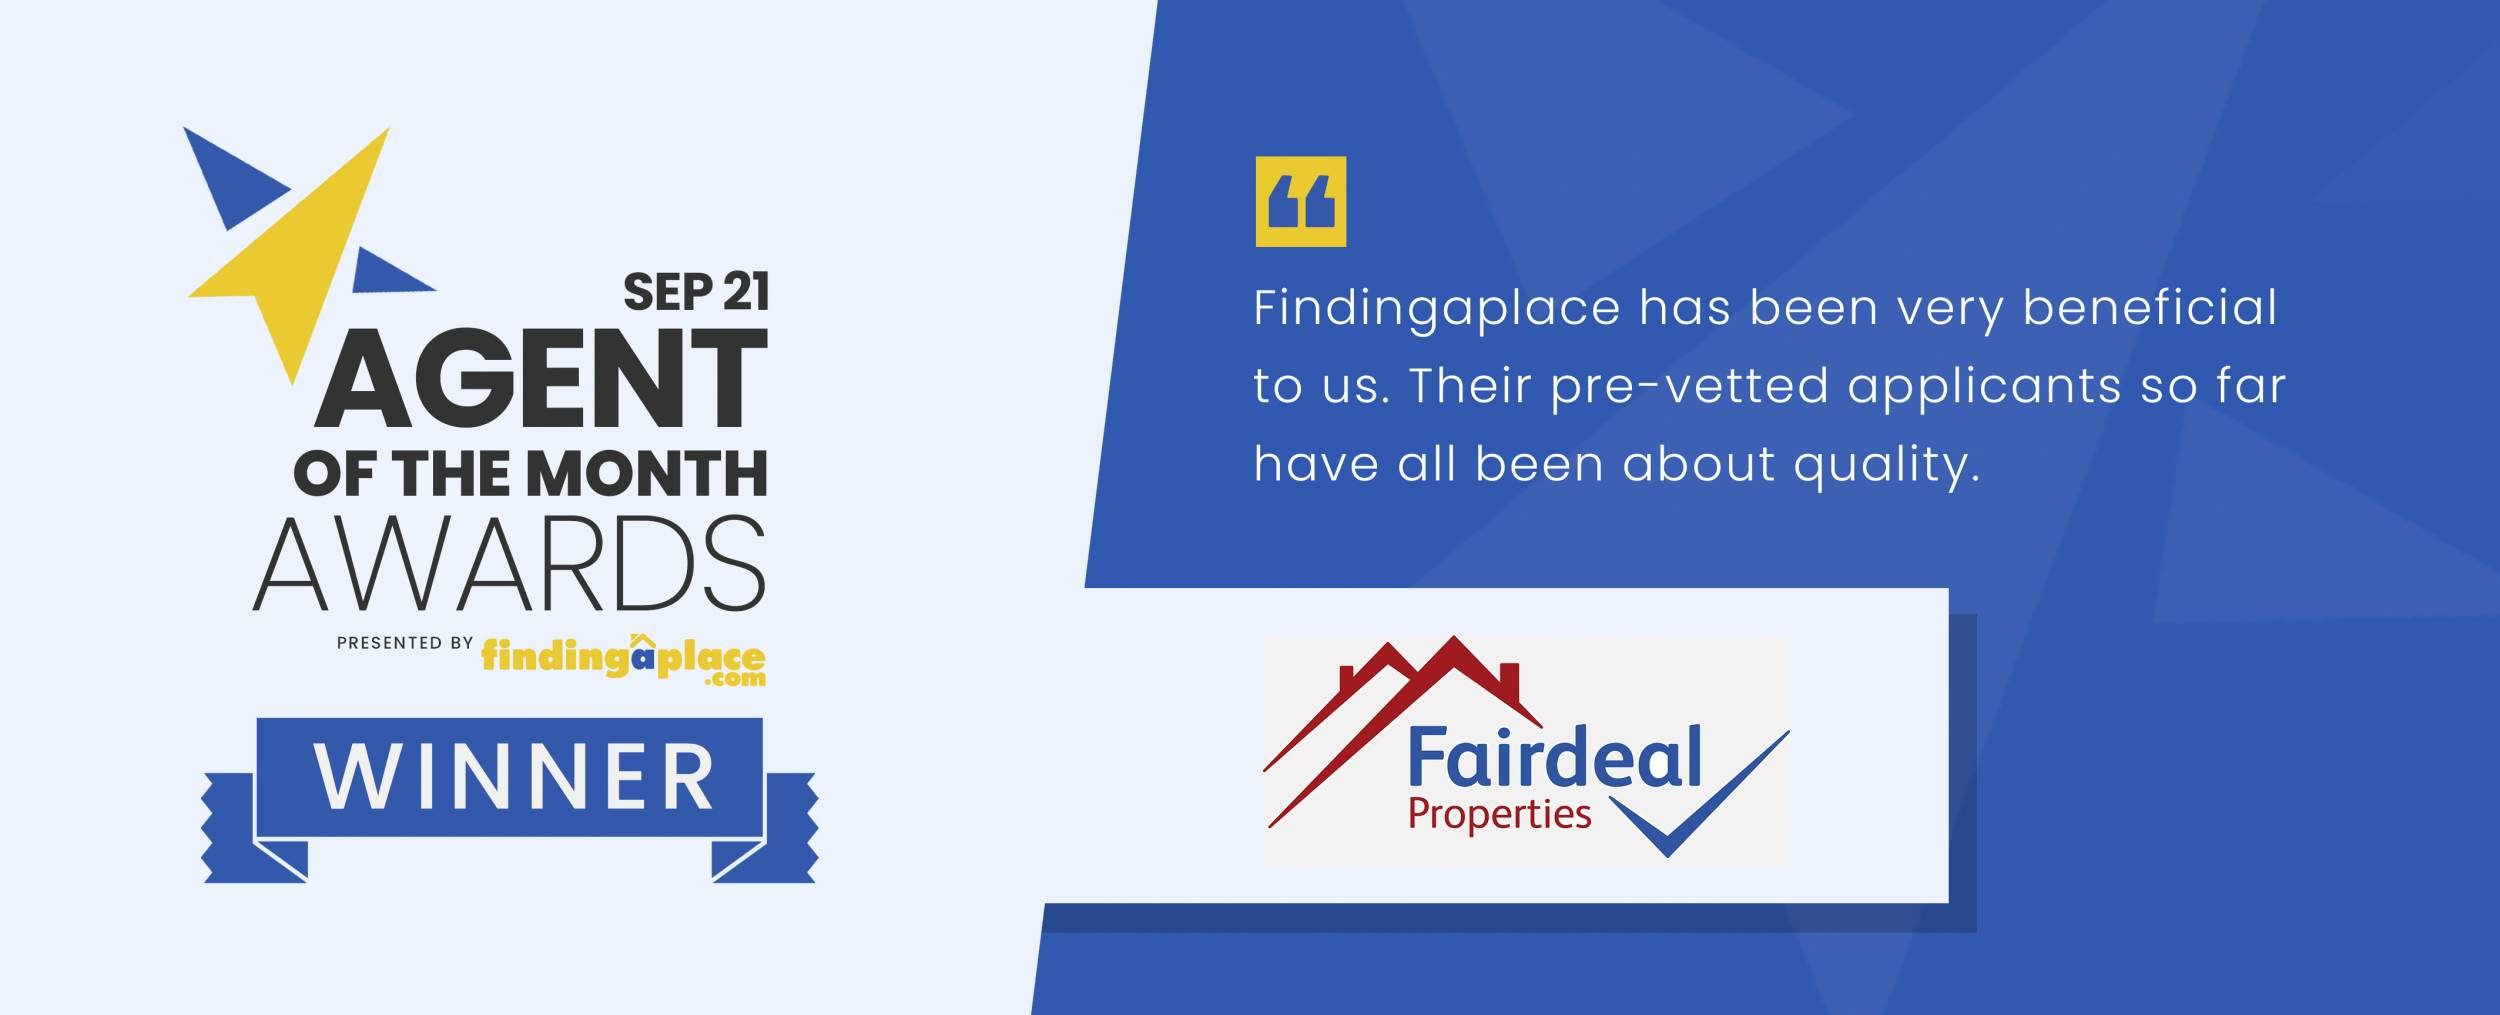 Agent of the Month, September 2021: Fairdeal Properties